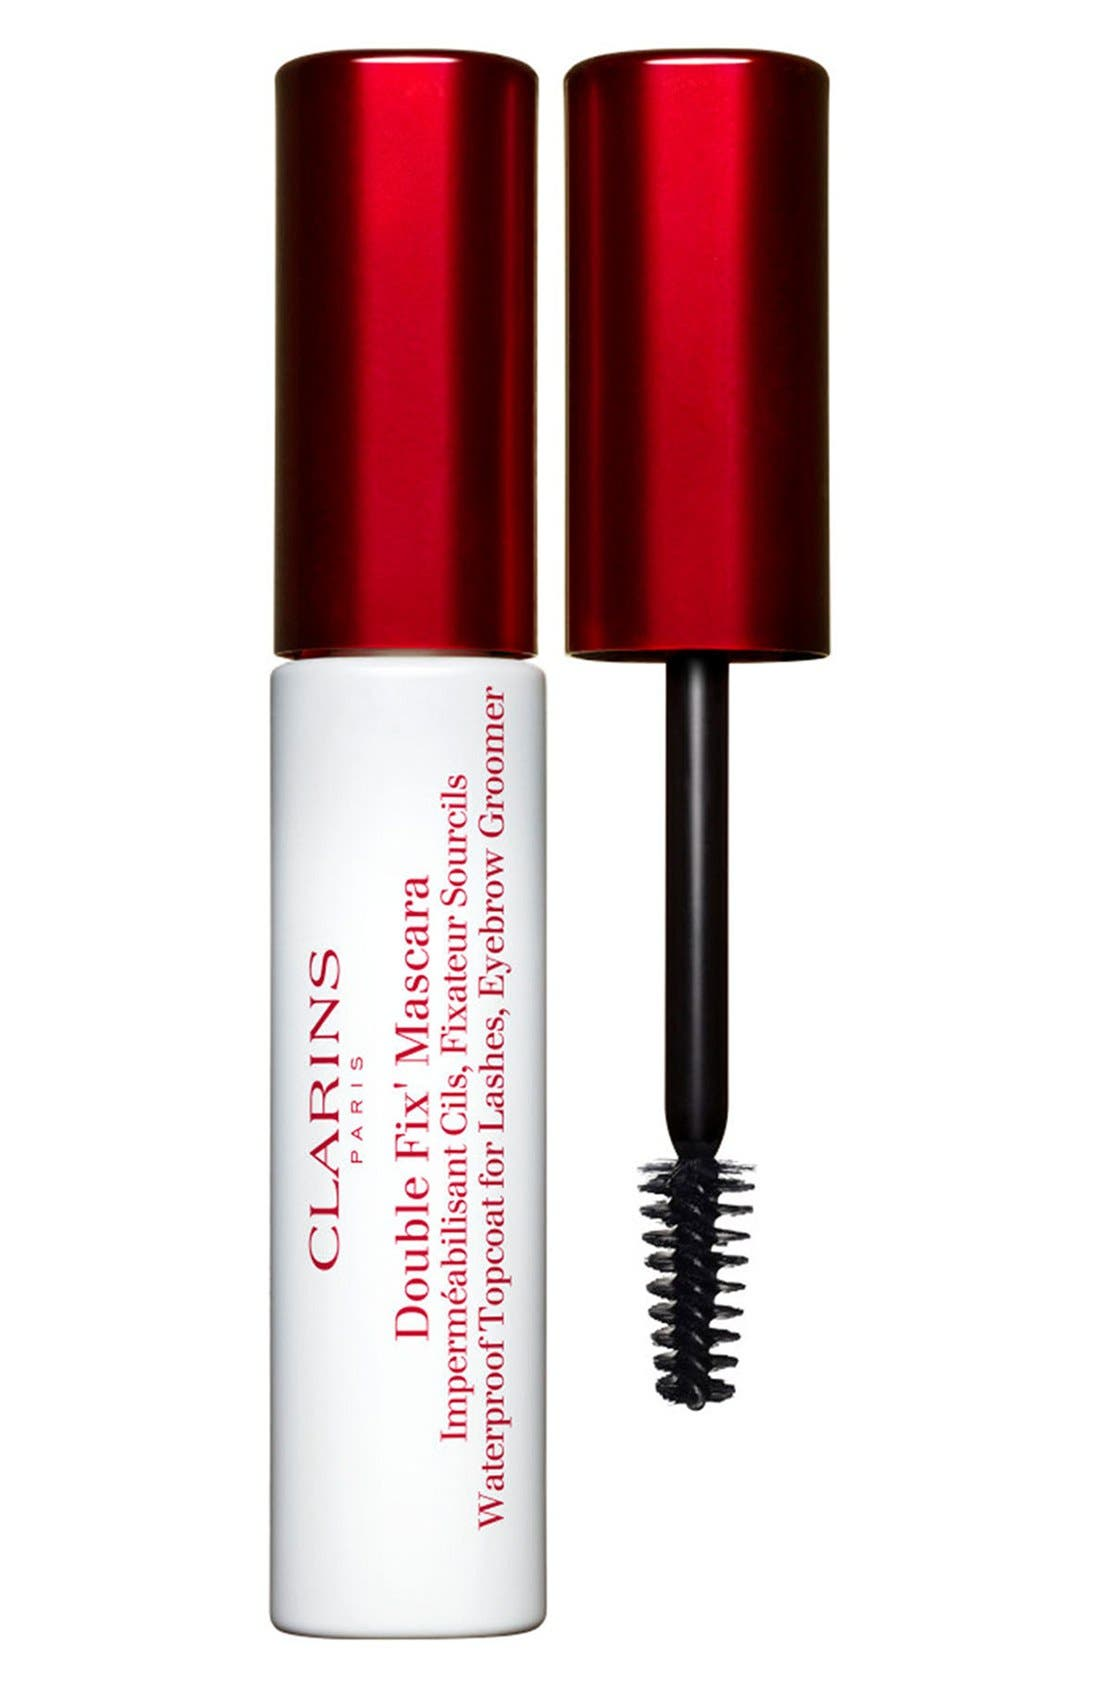 Clarins 'Double Fix' Mascara